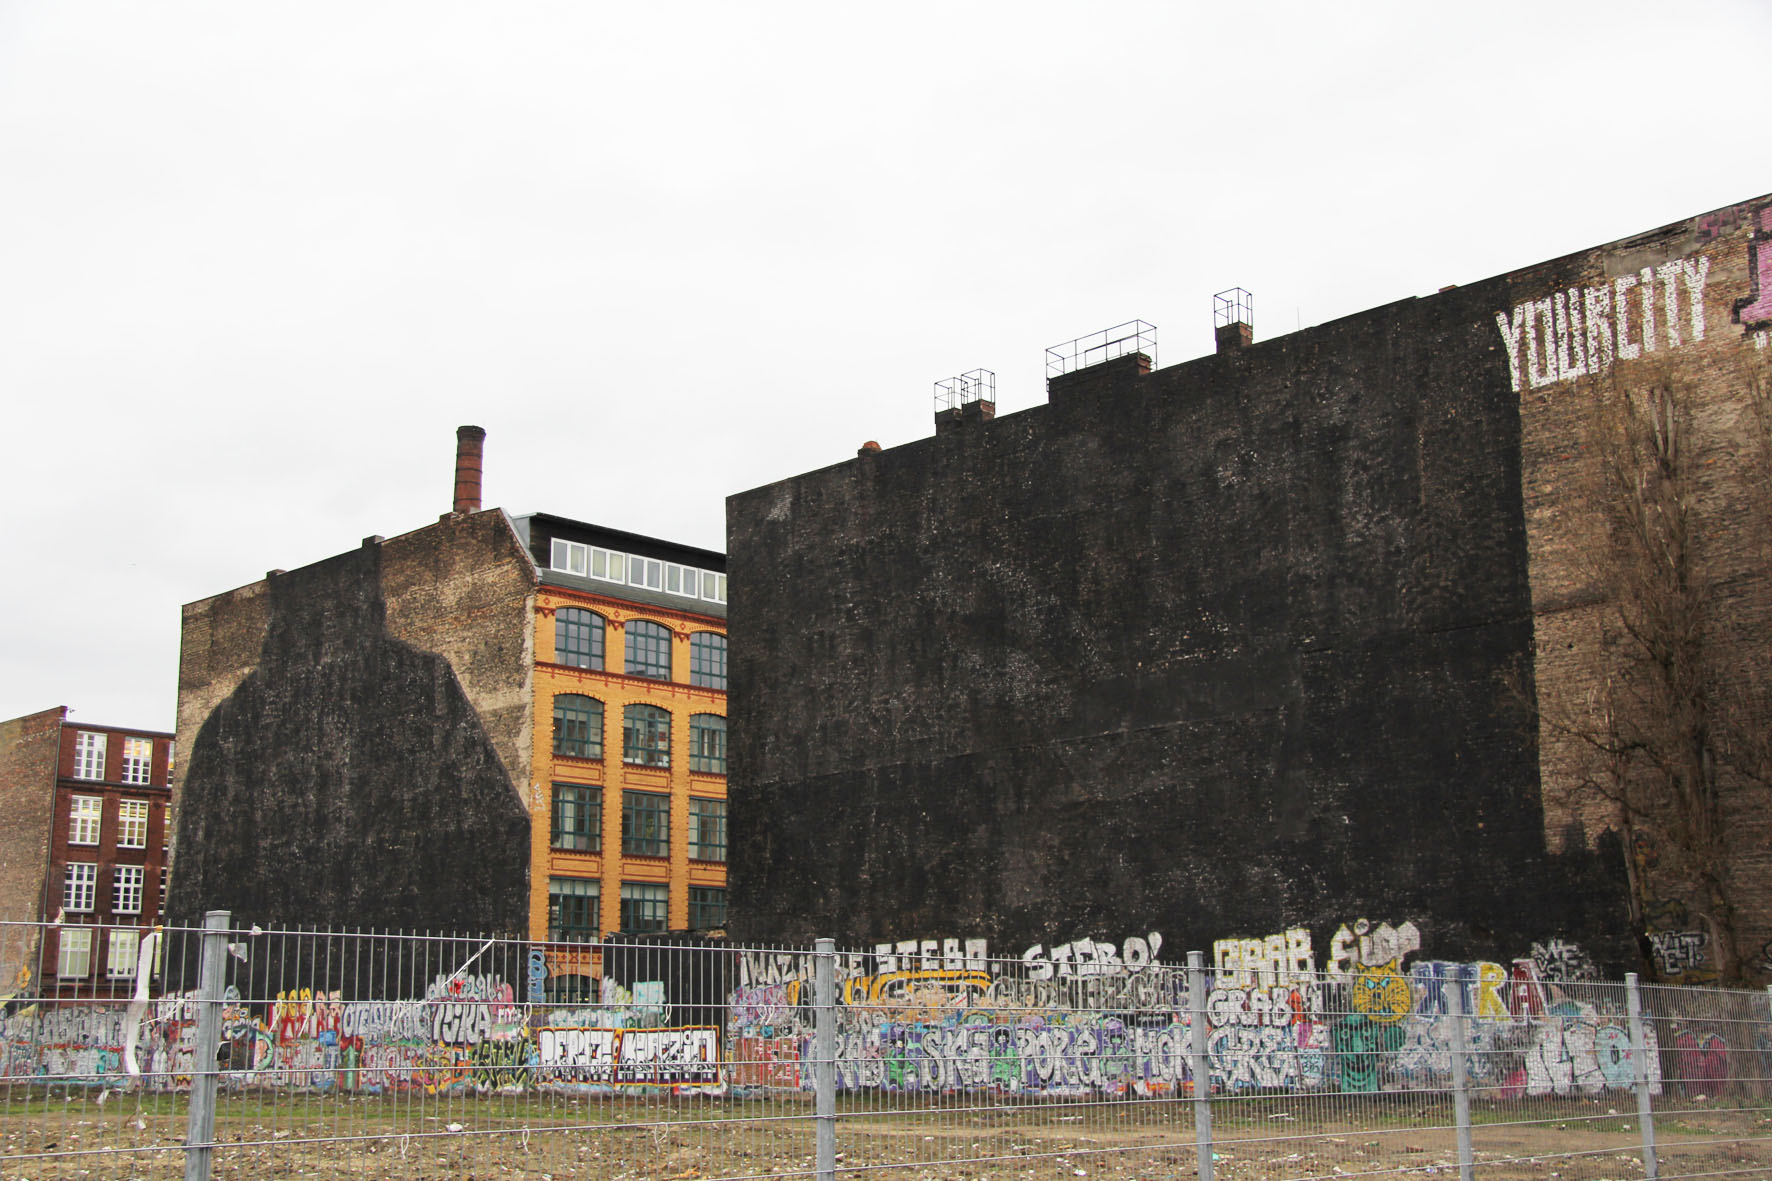 image of blu mural in berlin after being painted over